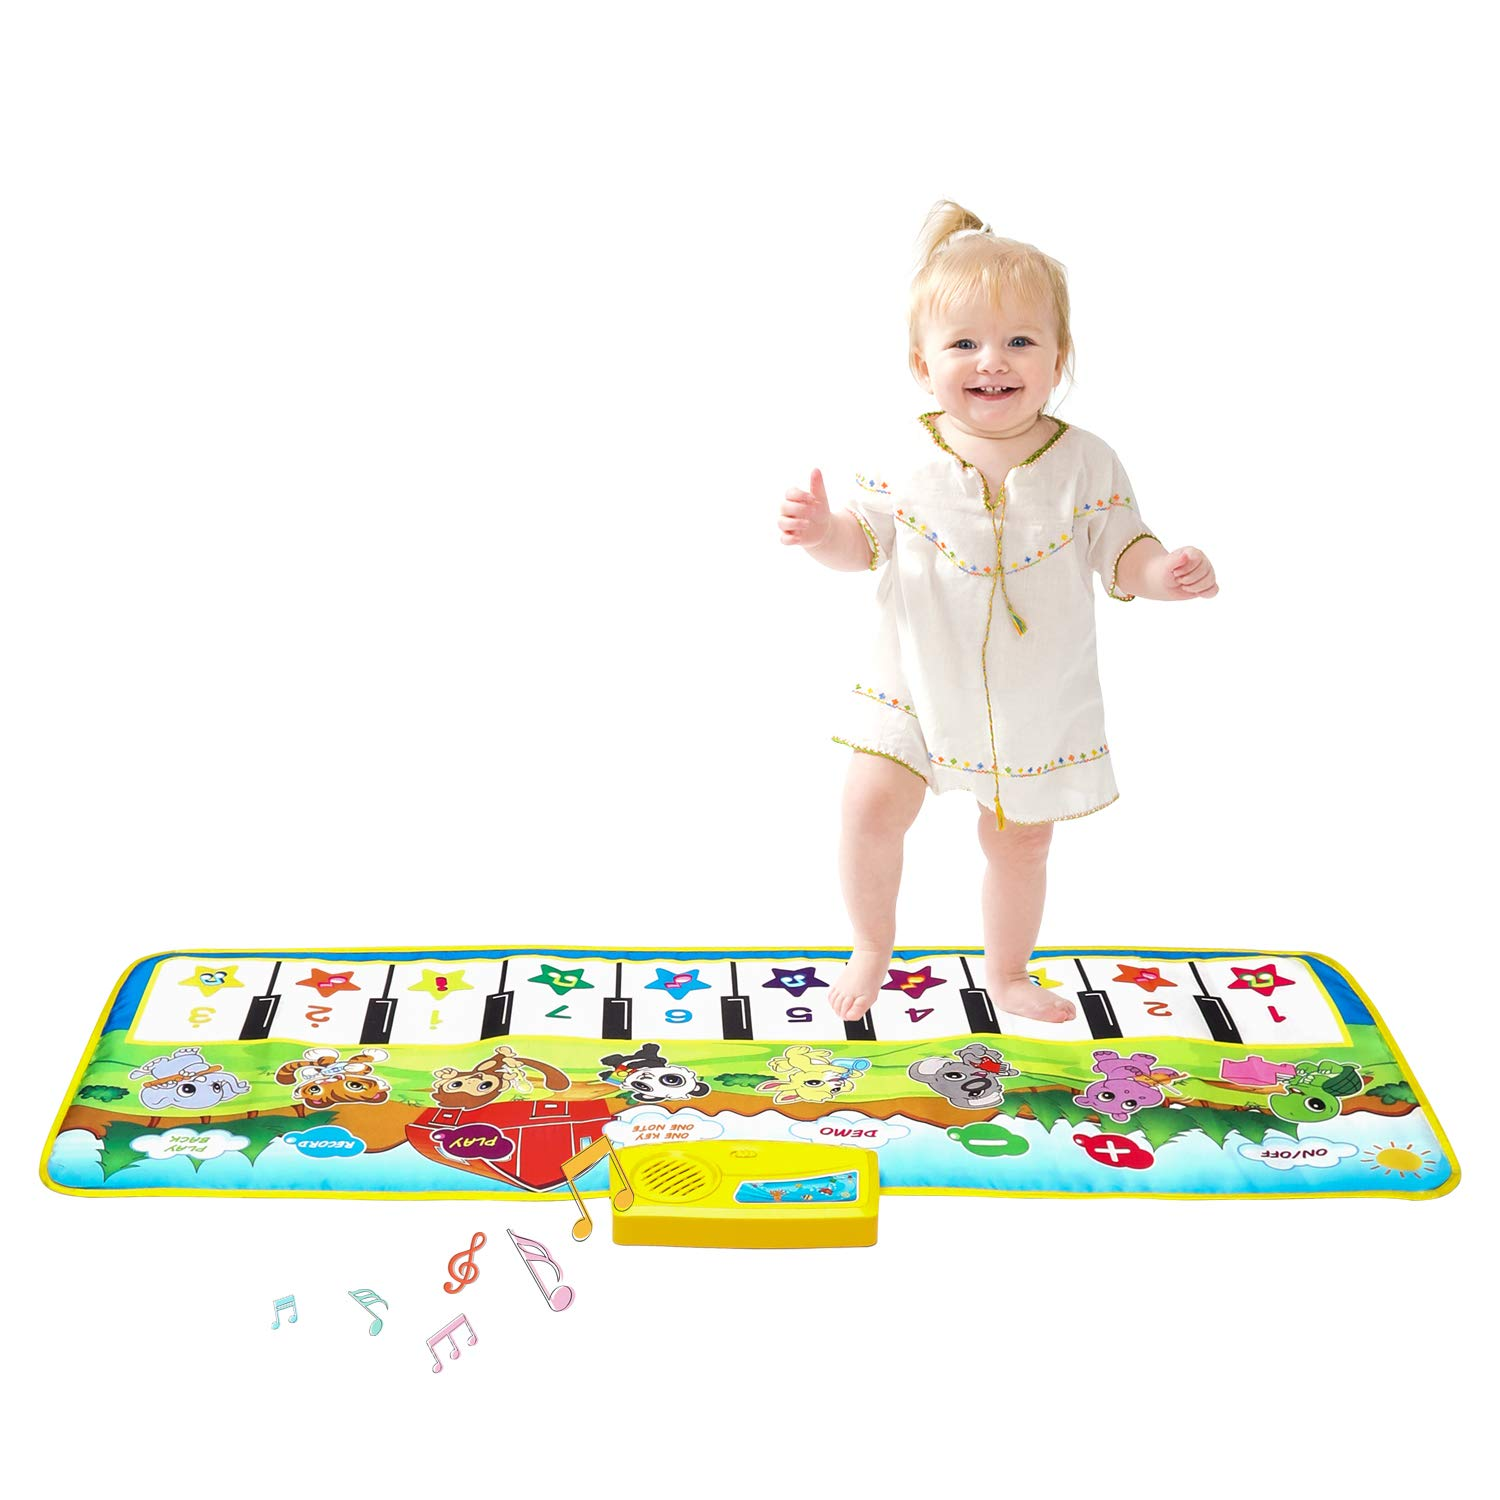 M SANMERSEN Kids Piano Mat, 39.5'' X 14'' Piano Keyboard Dancing Mat Electronic Funny Animal Touch Carpet Musical Blanket Toys 2 Year Old Girl Birthday Gifts for Kids Girls Boys Green by M SANMERSEN